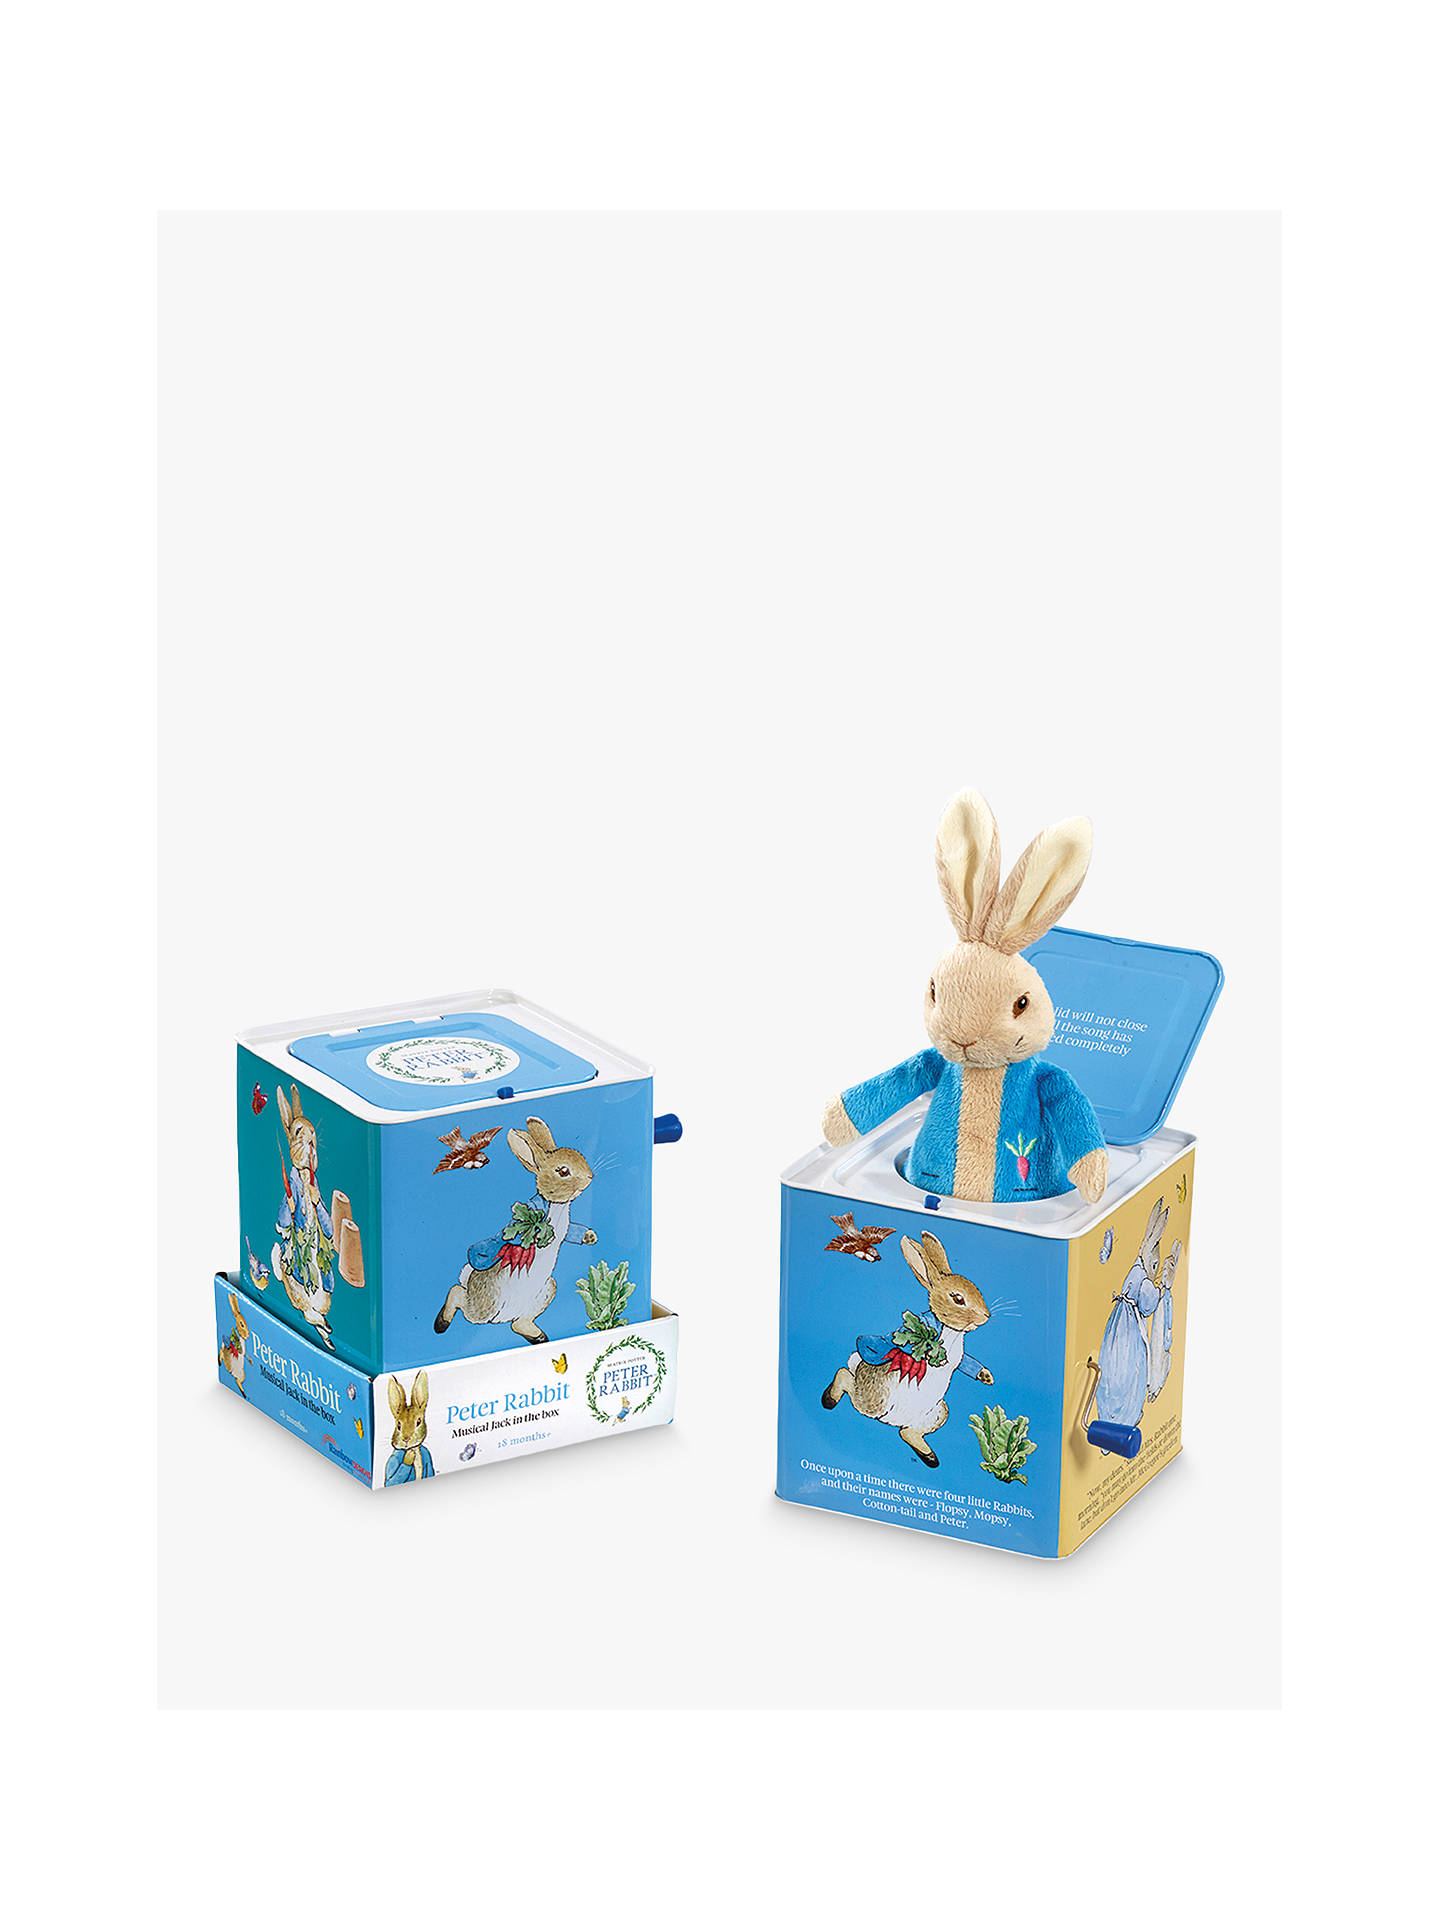 BuyBeatrix Potter Peter Rabbit Jack in the Box Online at johnlewis.com